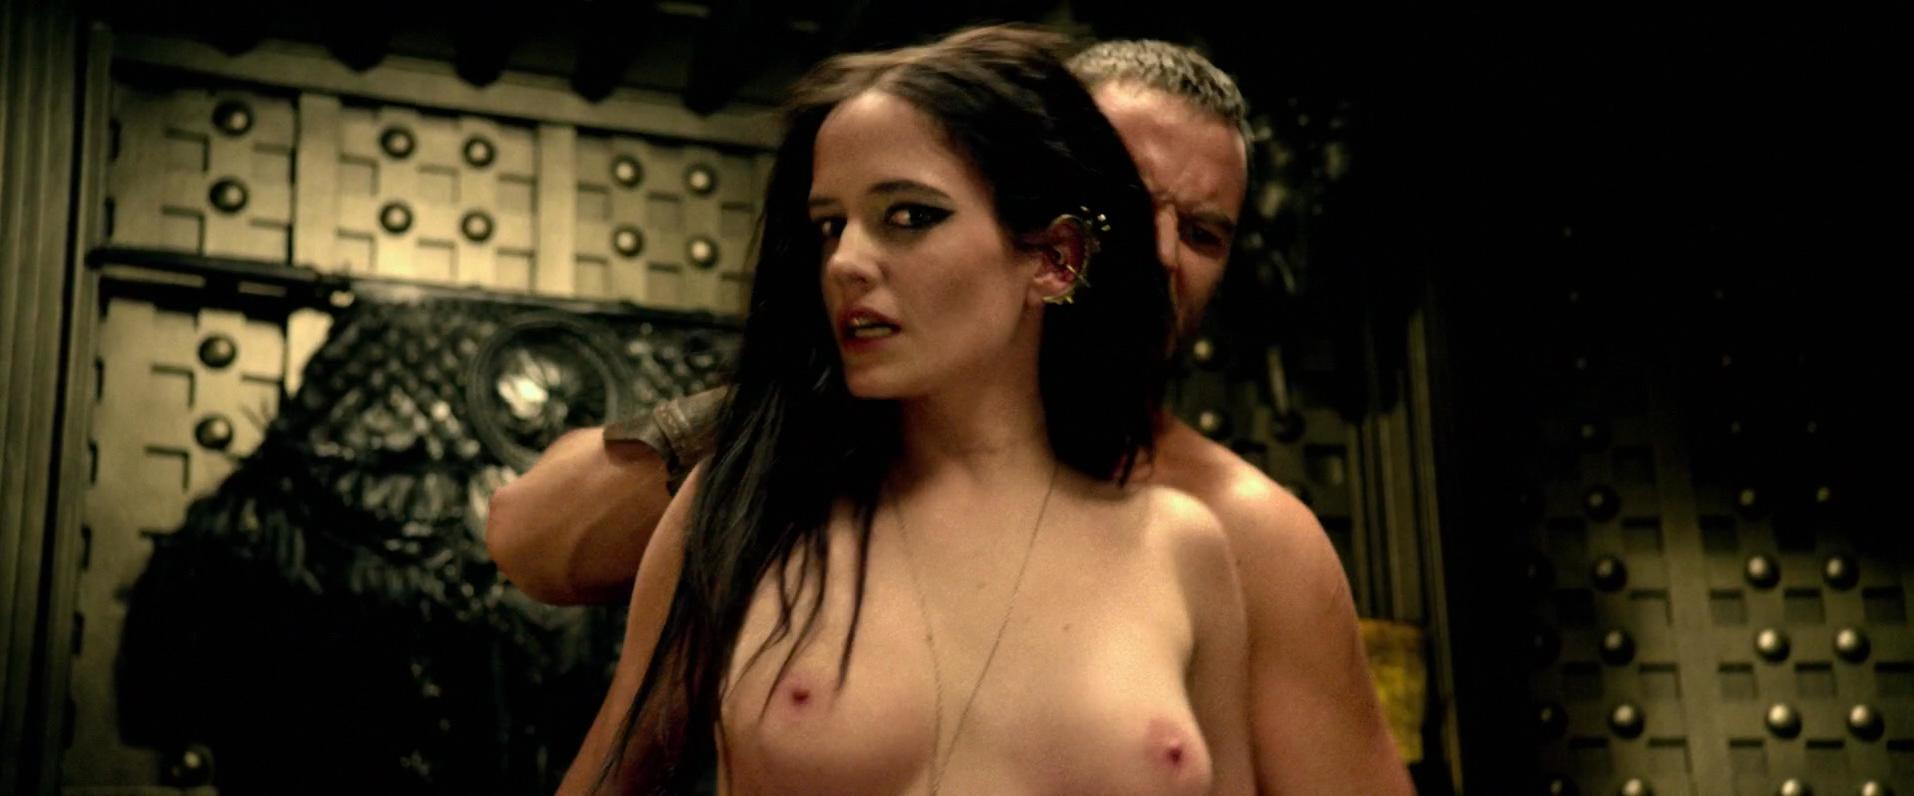 Eva Green nude - 300: Rise of an Empire (2014)